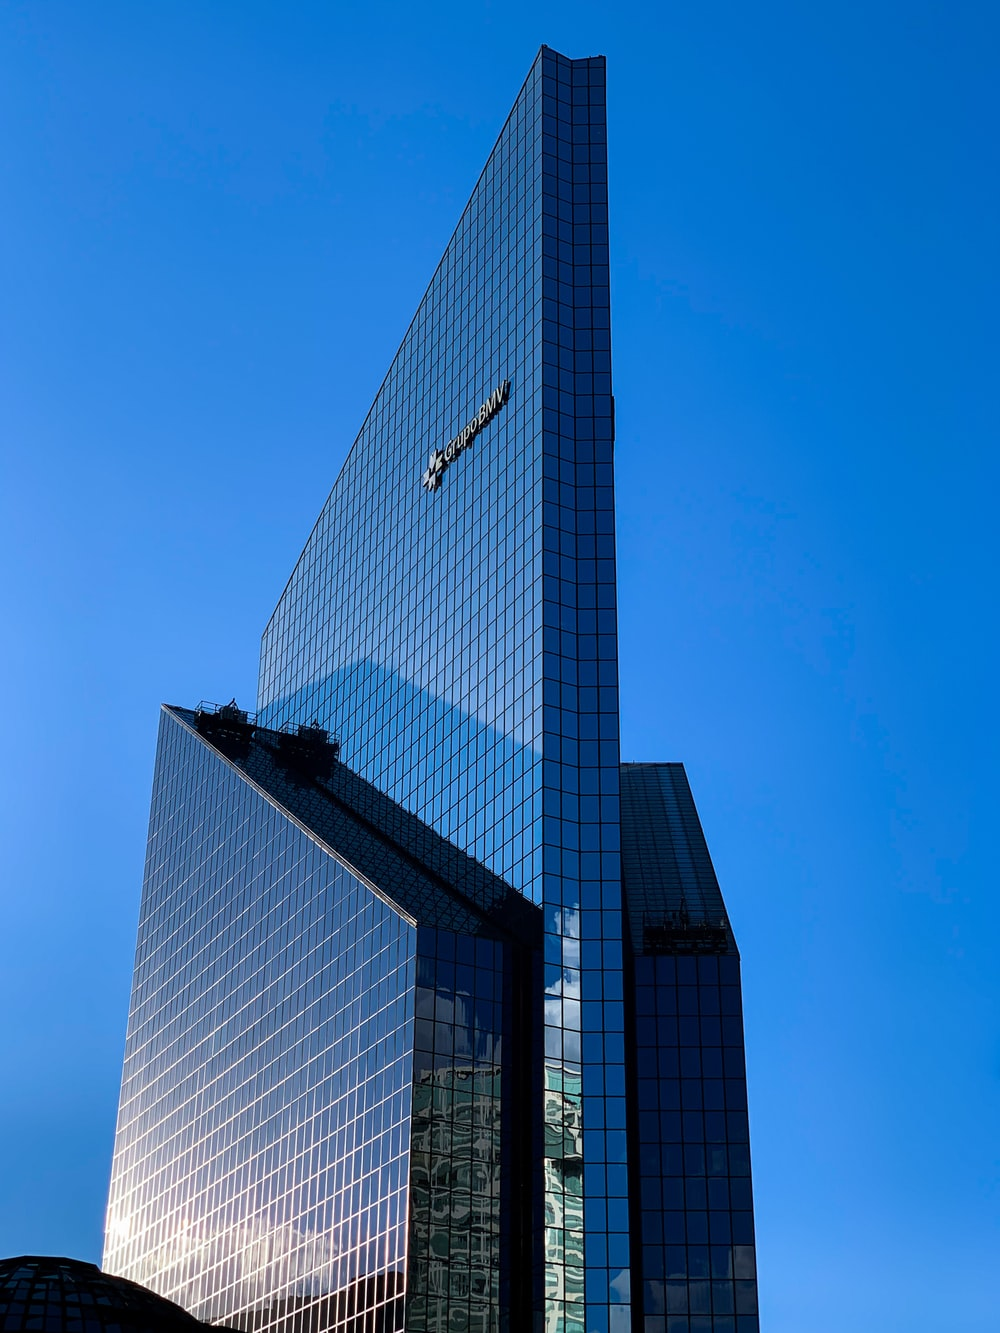 black and white glass building under blue sky during daytime